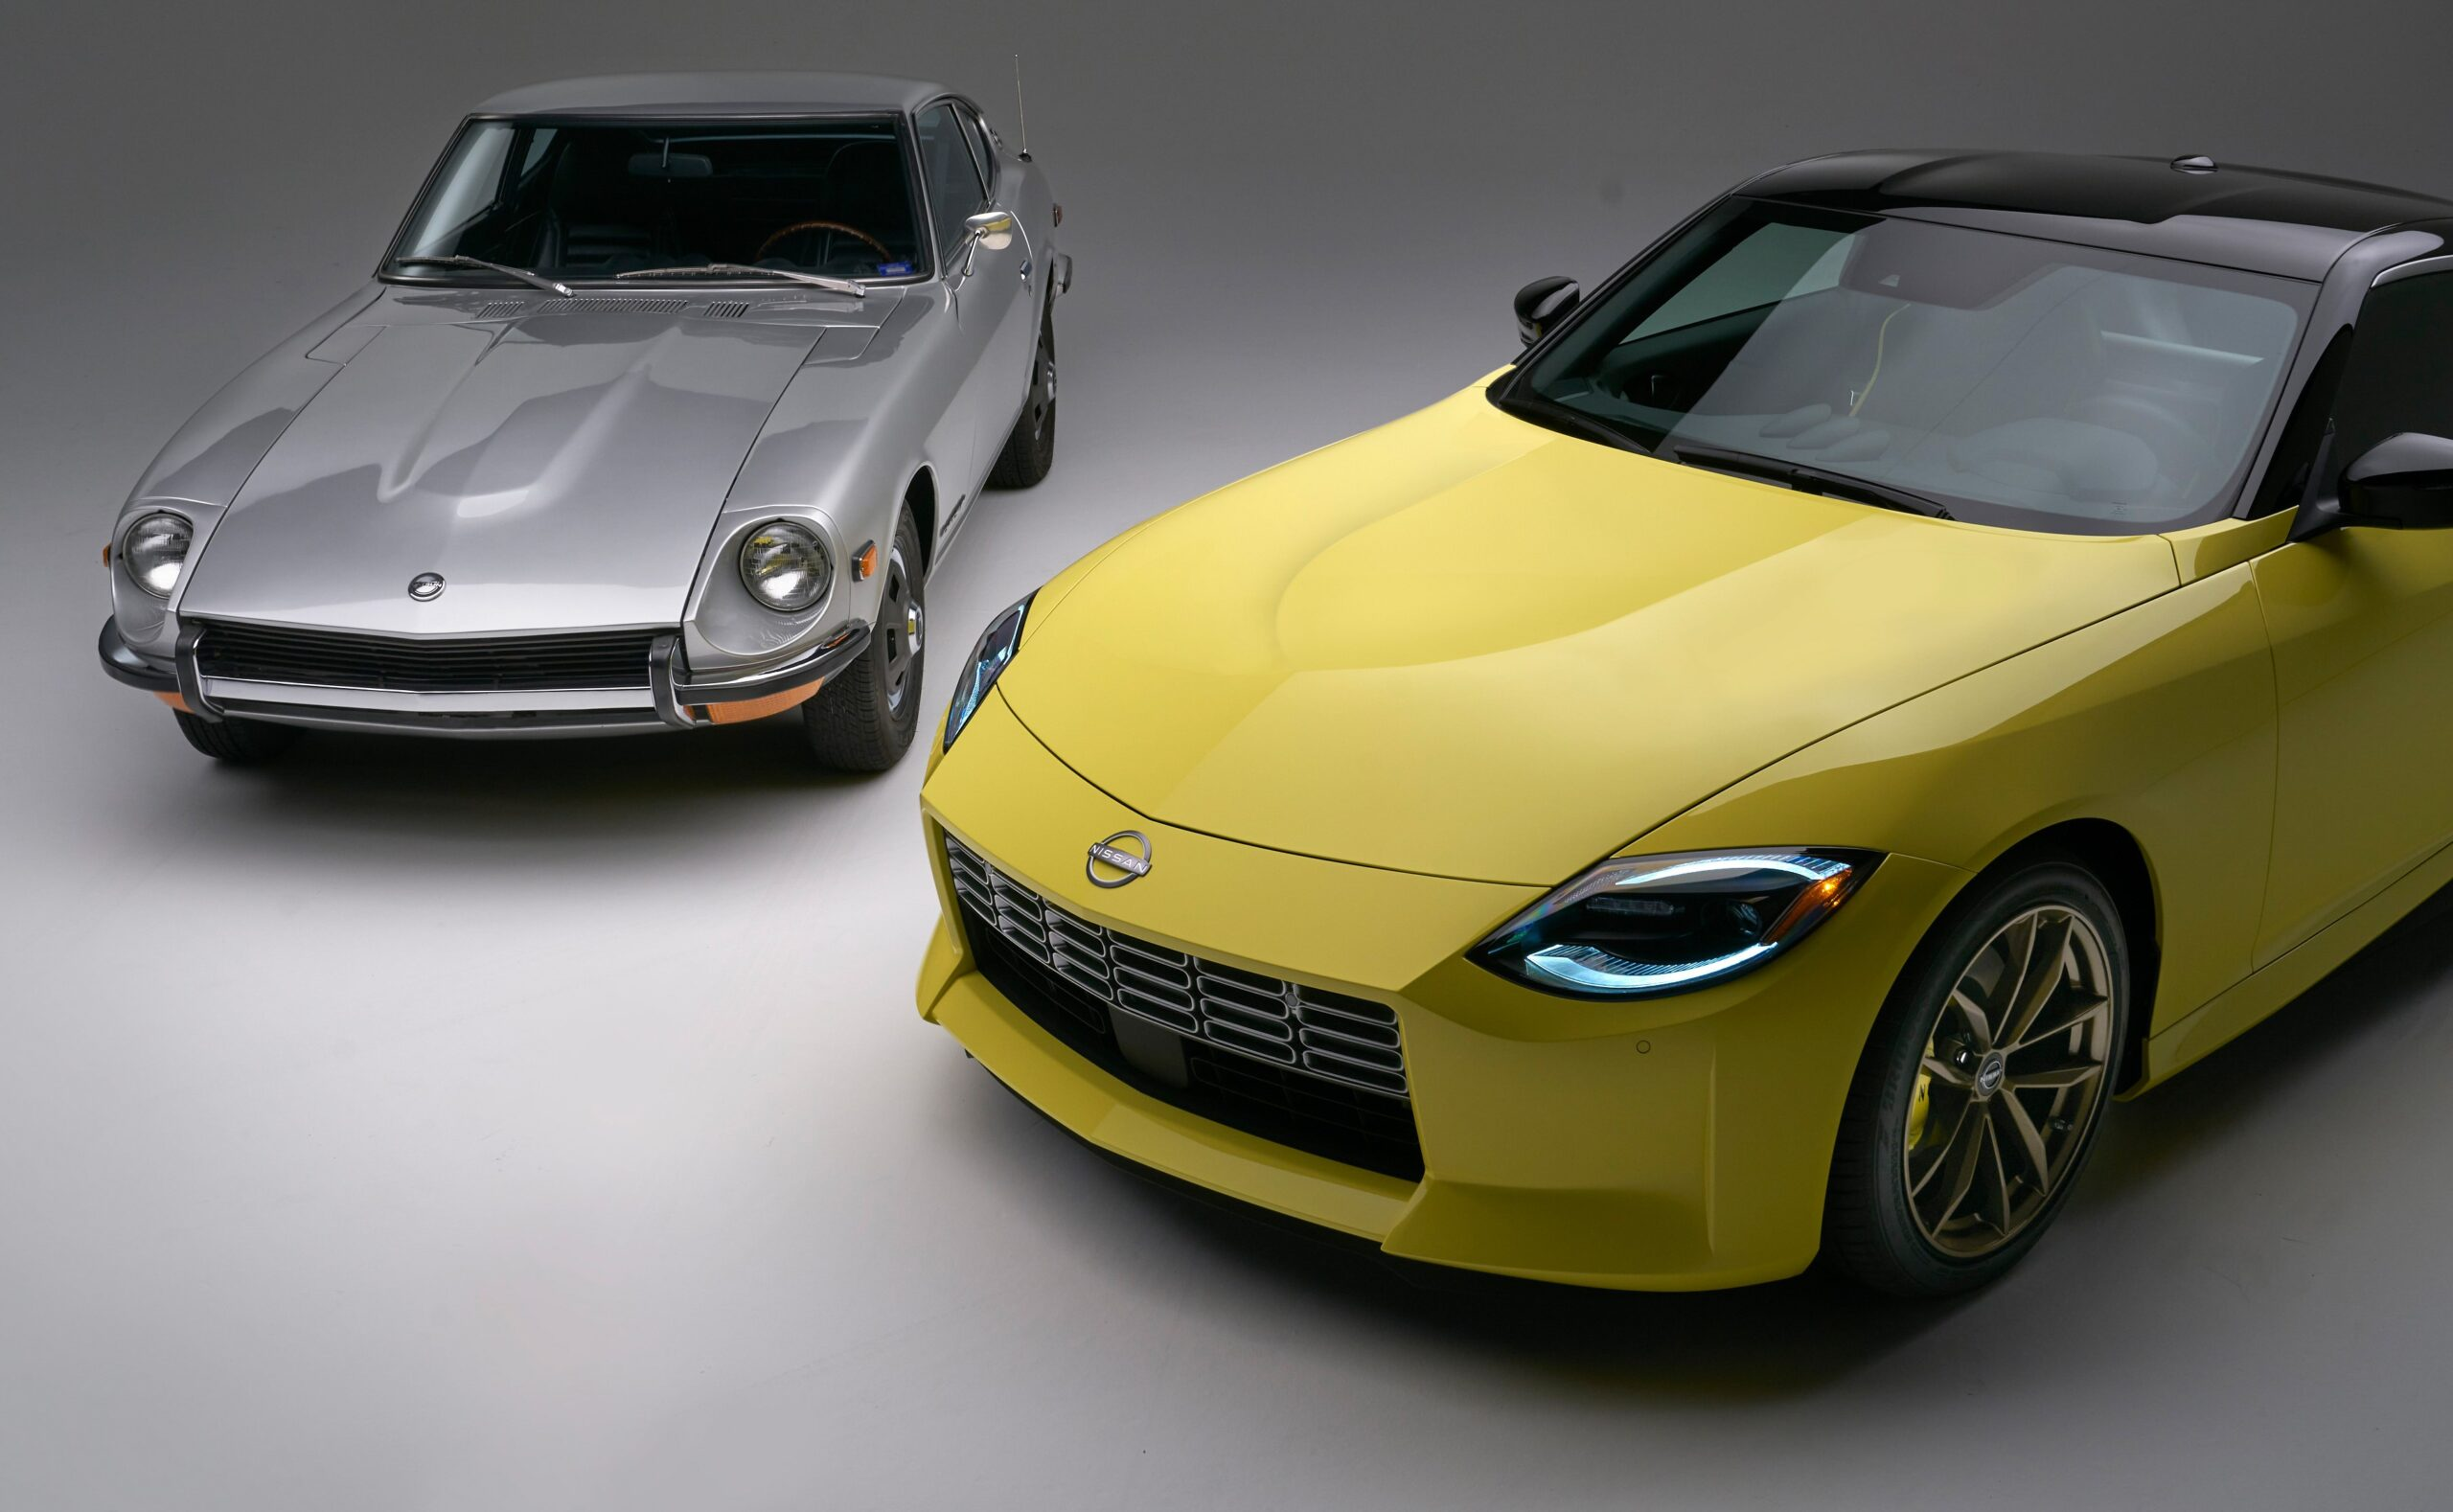 An image of the first and latest generations of the Nissan Z